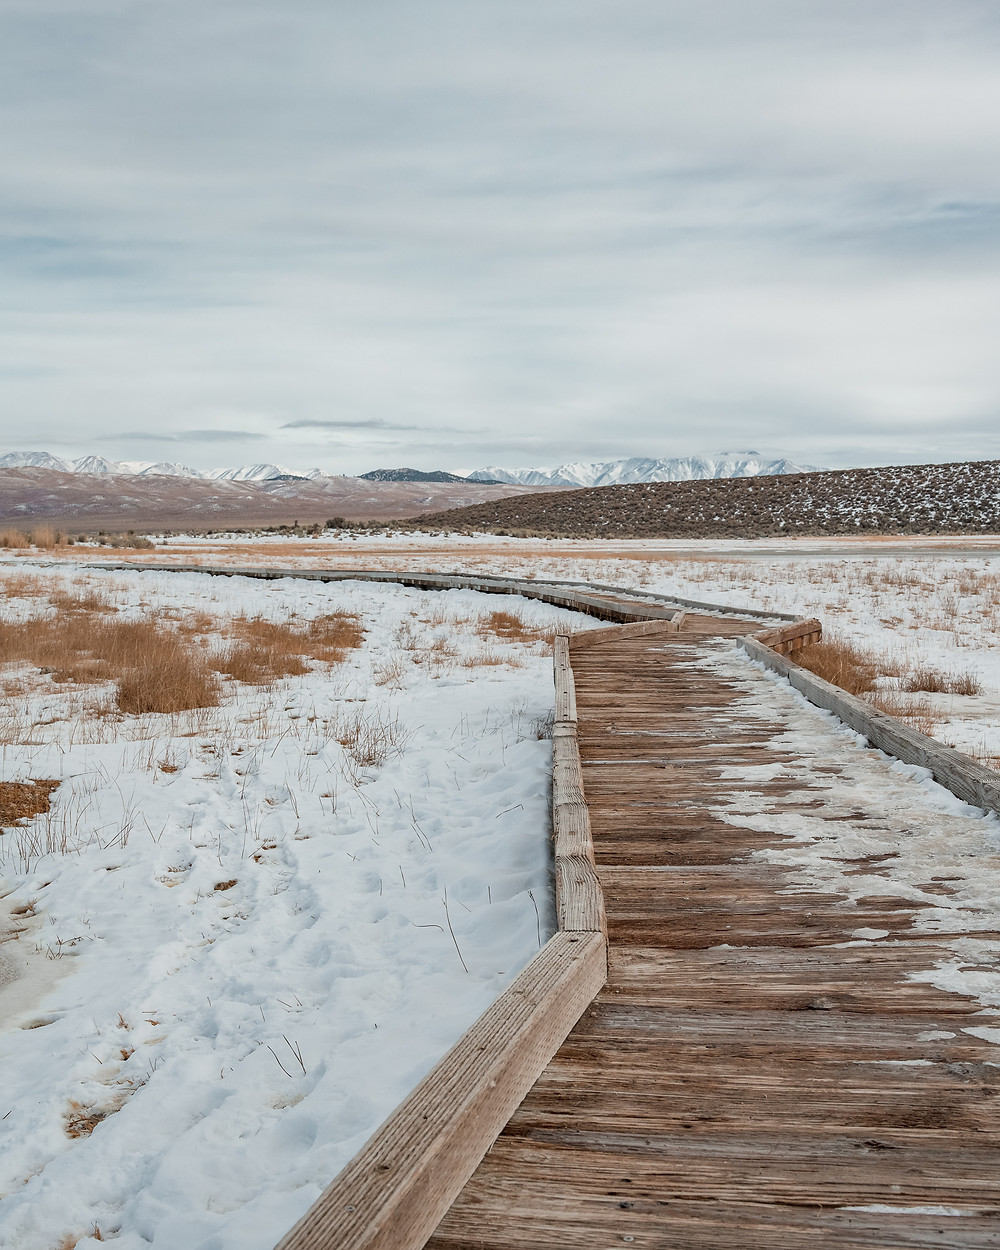 Walking Trail to Wild Willys Hot Springs in Mammoth Lakes